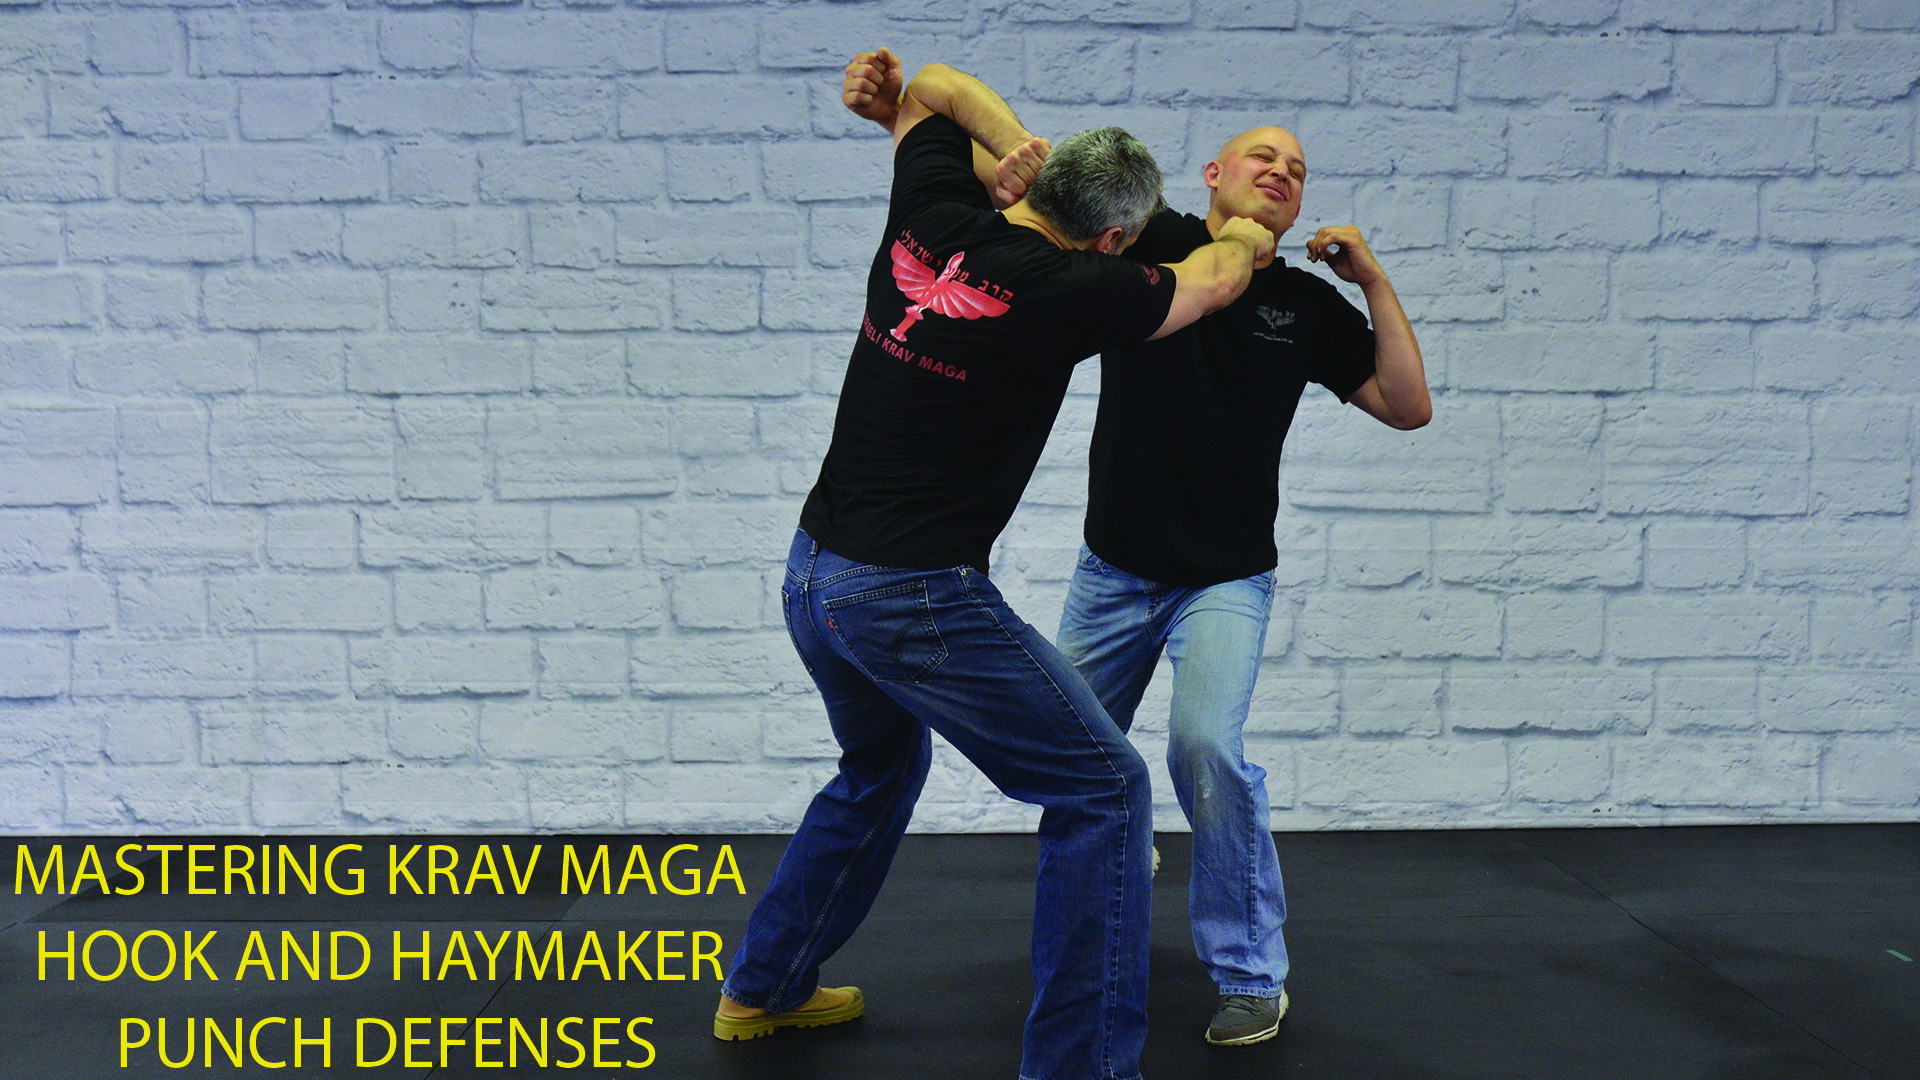 Watch Mastering Krav Maga Introduction Prime Video